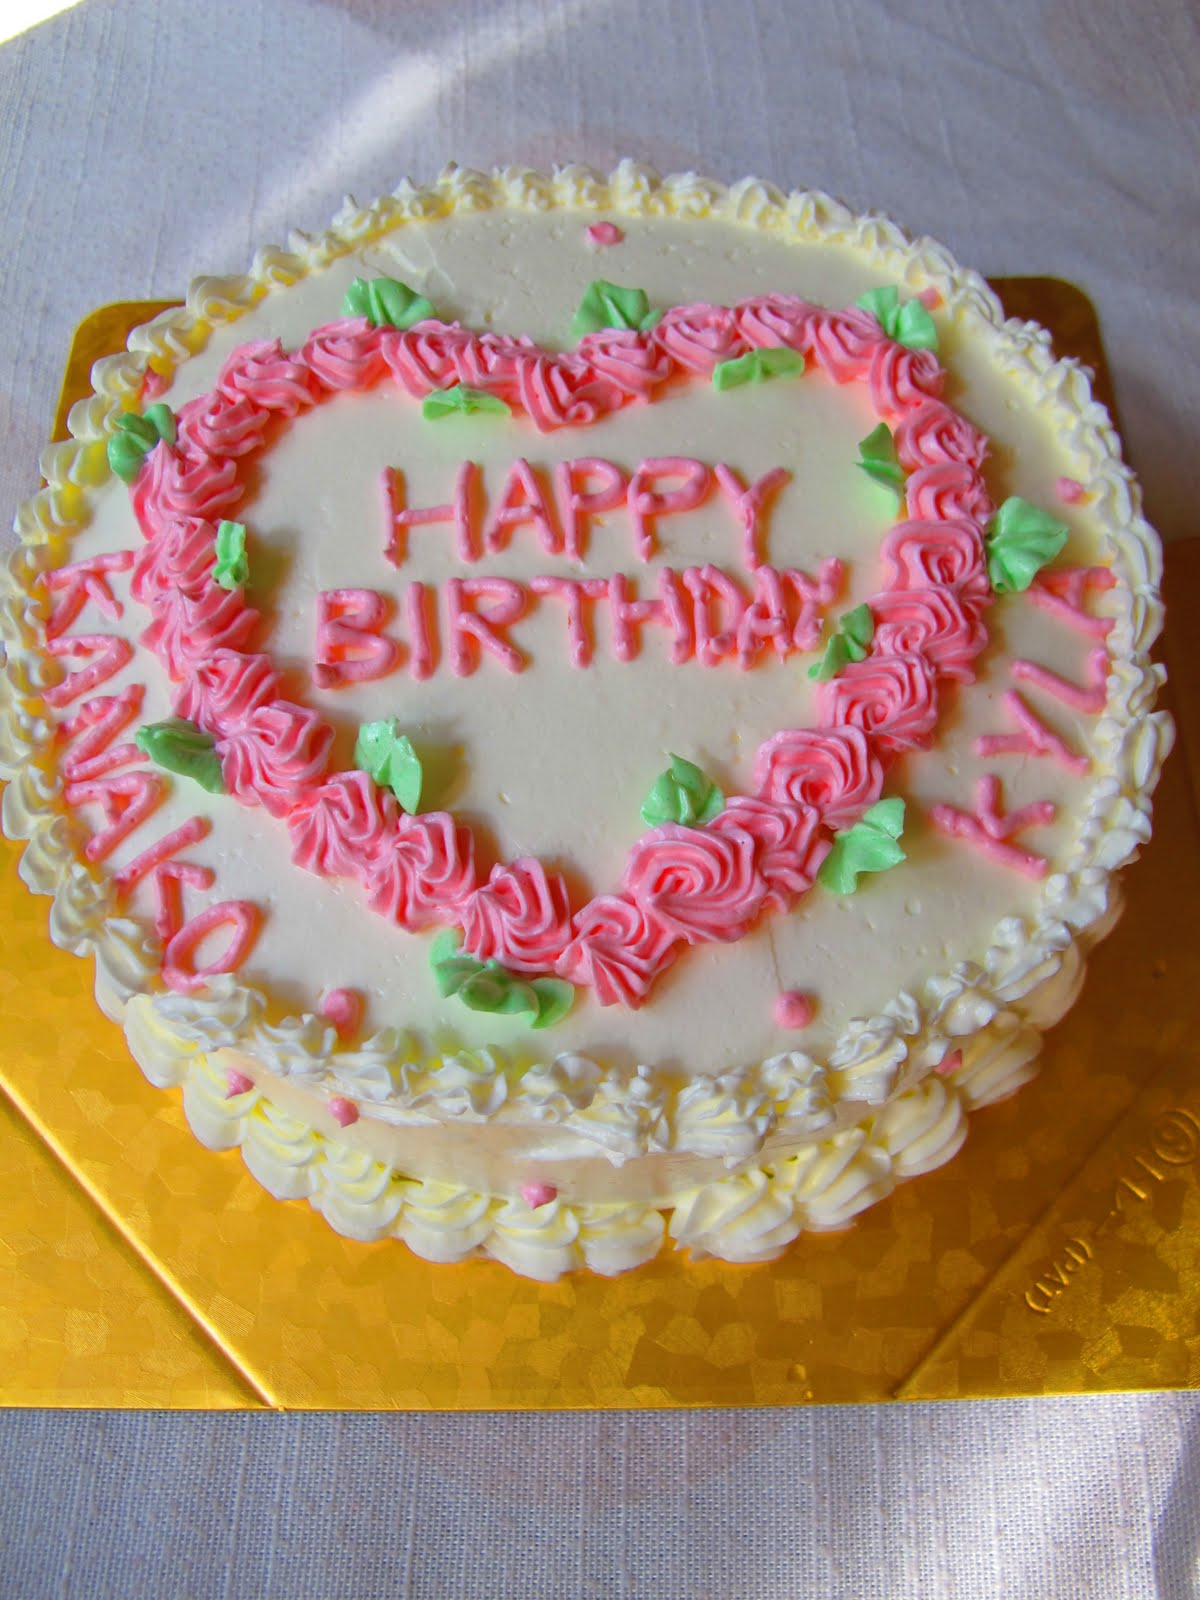 Happy birthday cake flowers with name flowers healthy happy birthday cake with flowers izmirmasajfo